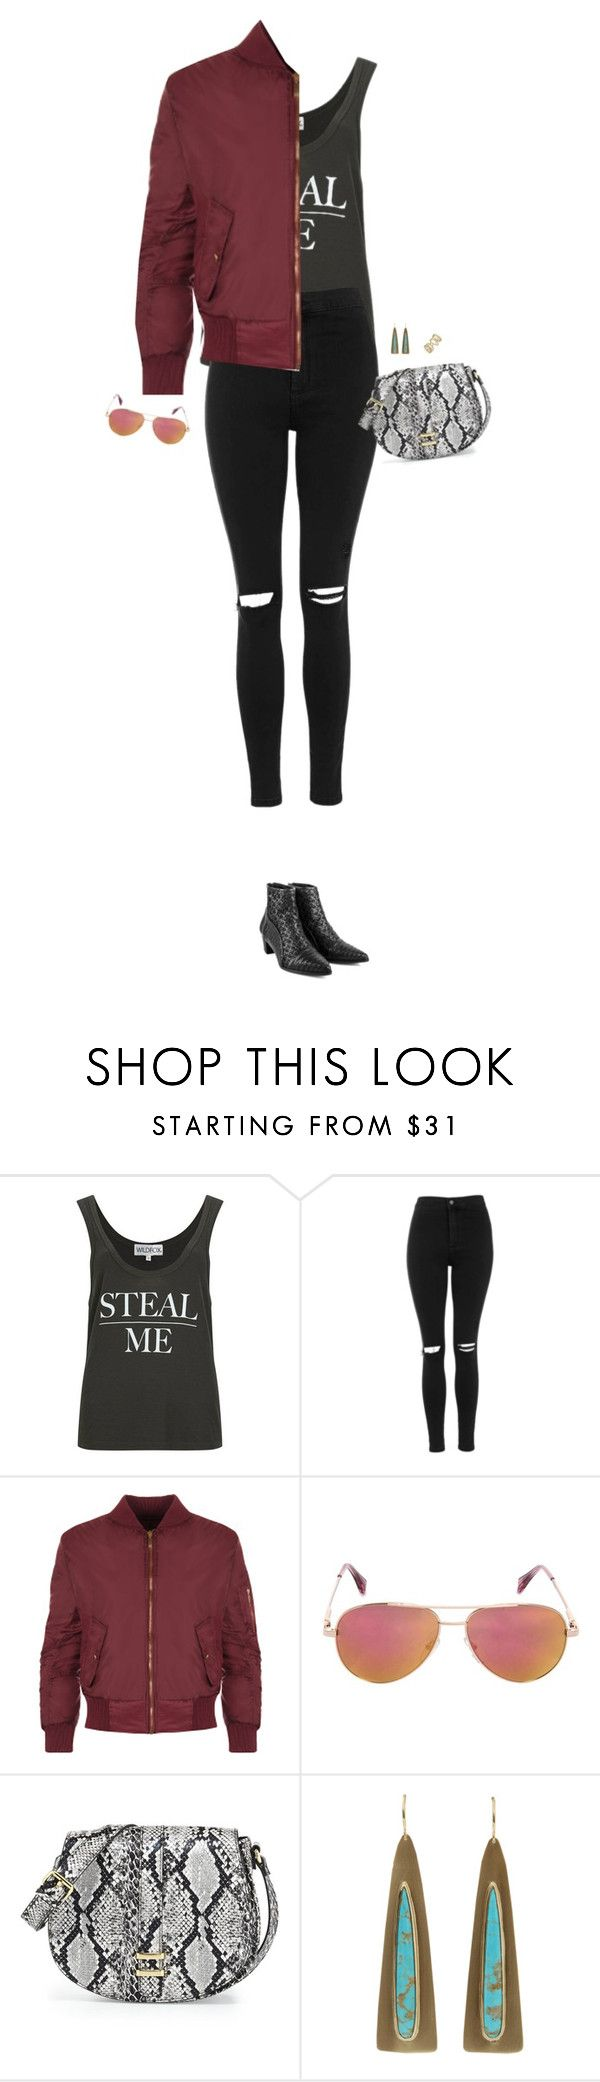 """How to Style a Maroon Bomber Jacket with Black Denim Jeans and Black Booties"" by outfitsfortravel ❤ liked on Polyvore featuring Wildfox, Topshop, WearAll, Cutler and Gross, Neiman Marcus, Irene Neuwirth and NEXTE Jewelry"